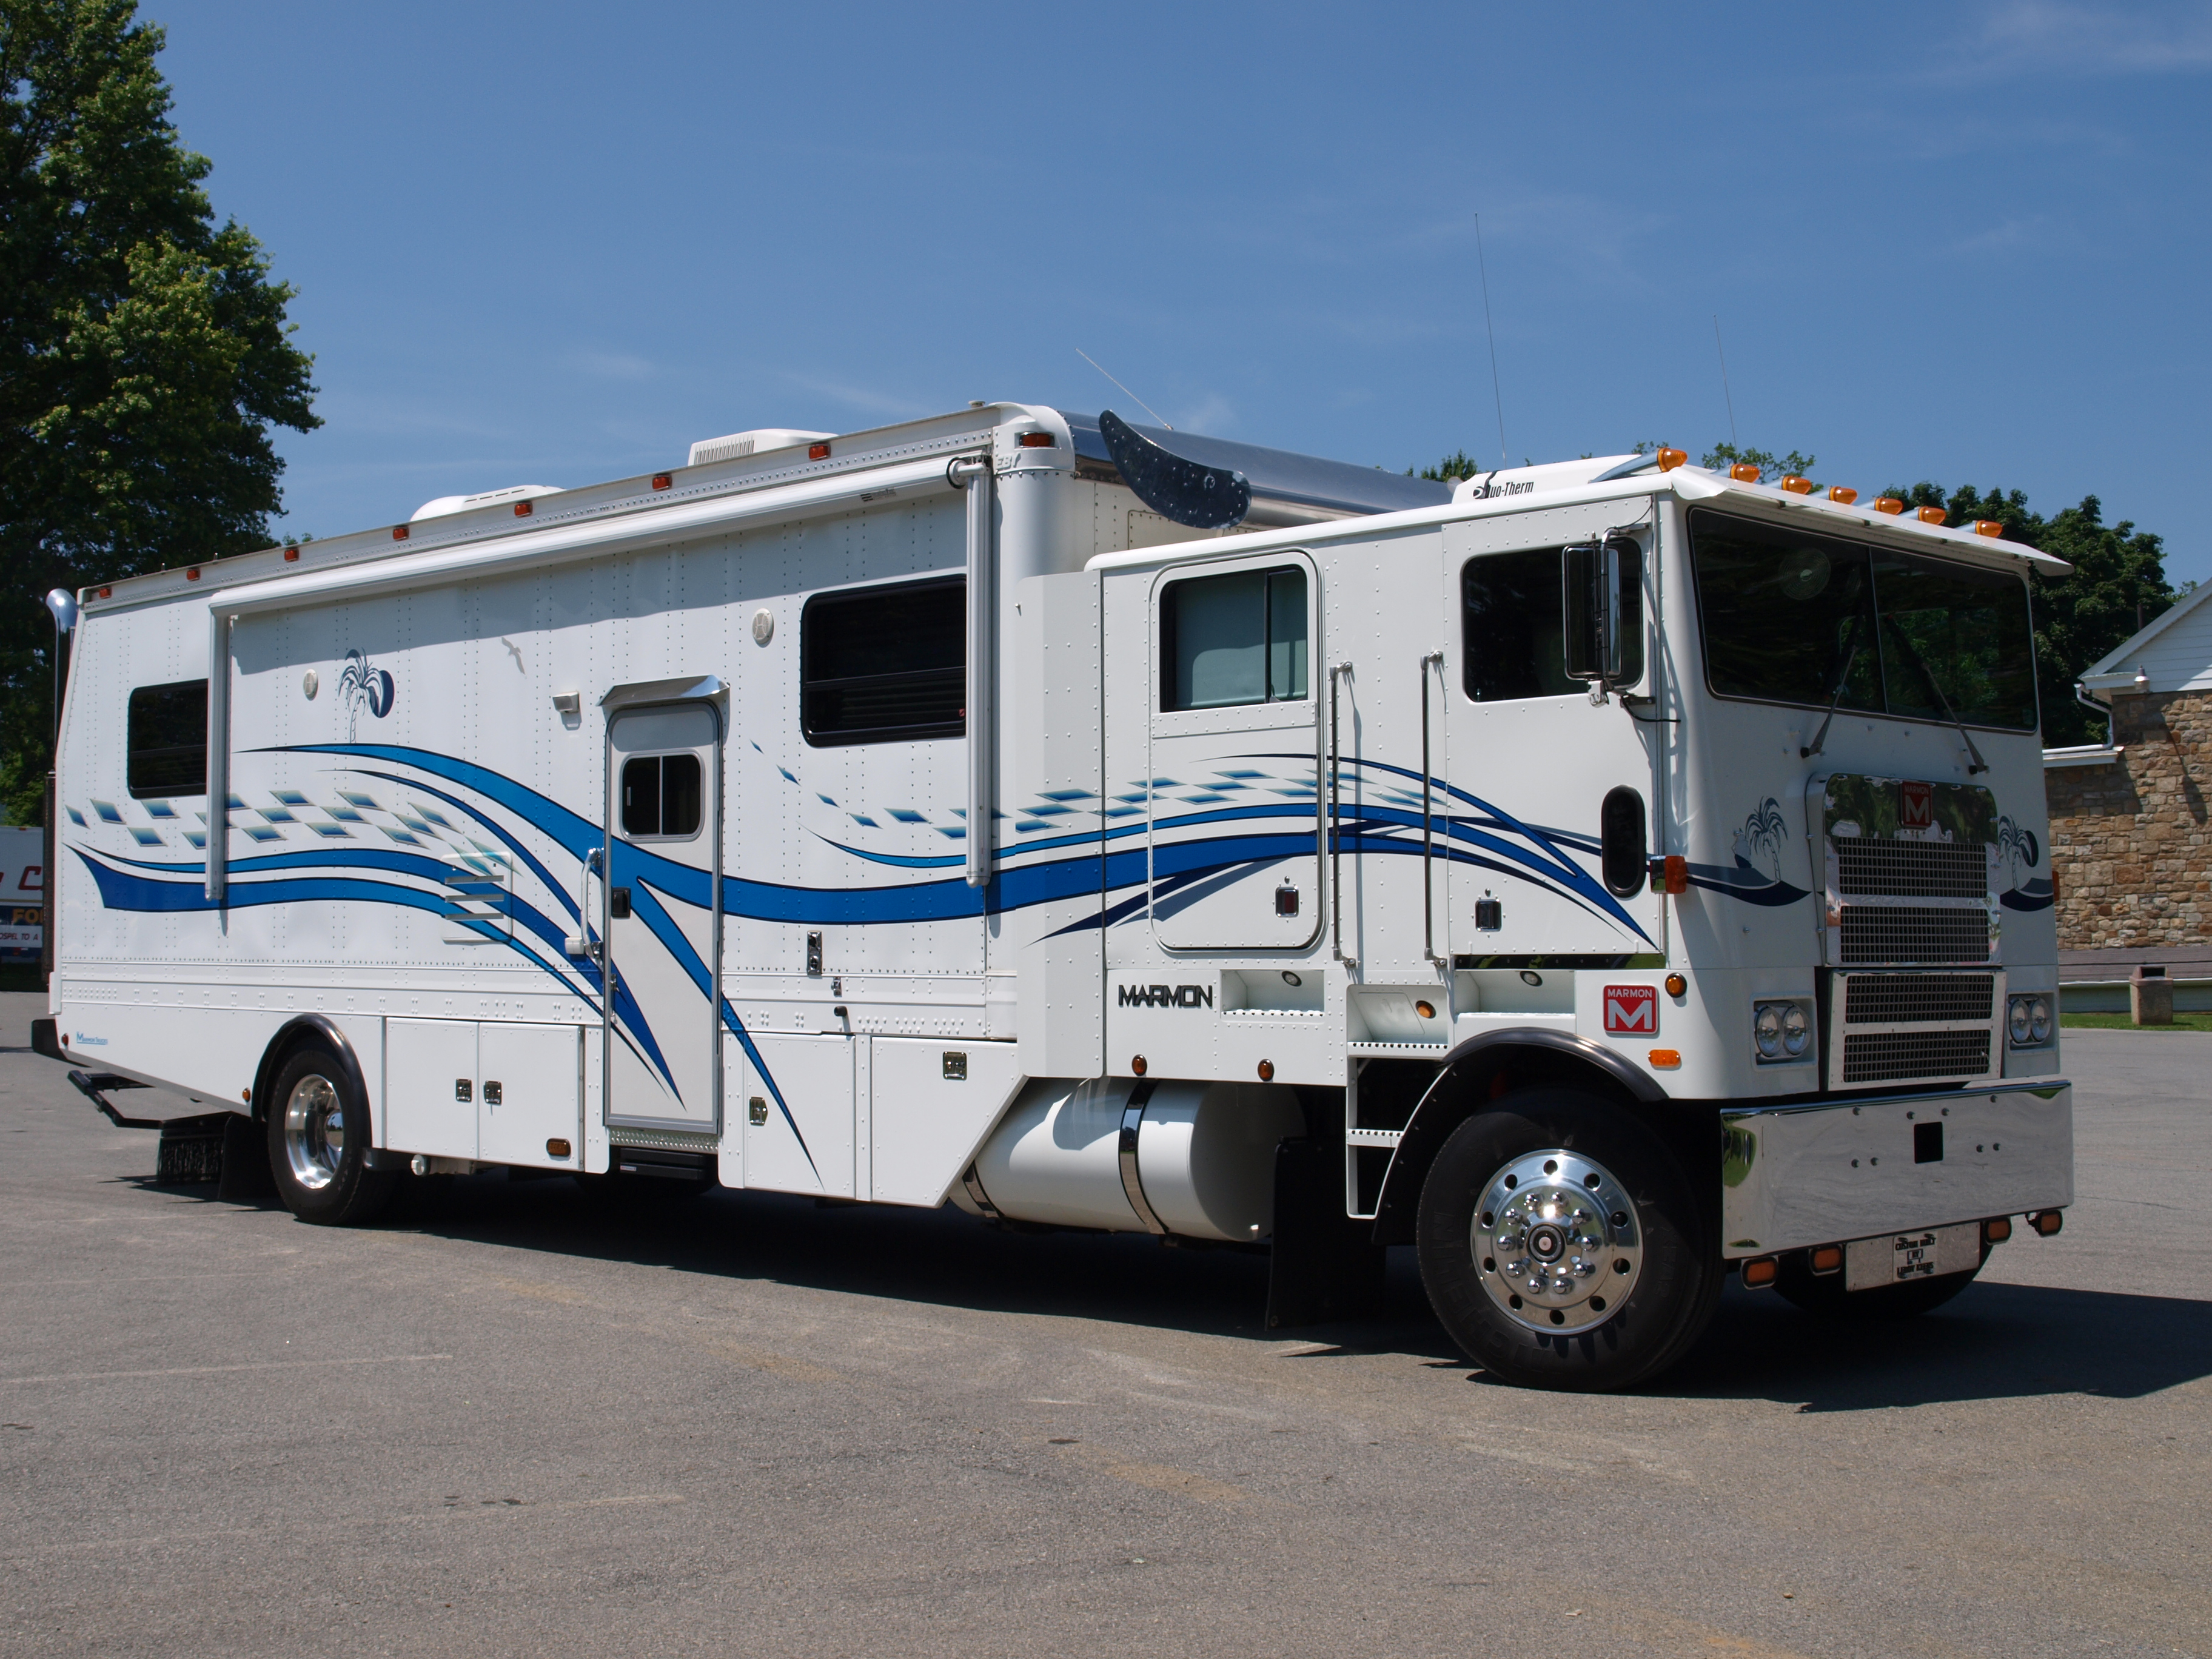 Used Rvs For Sale By Owners Broward W Palm Beach Area